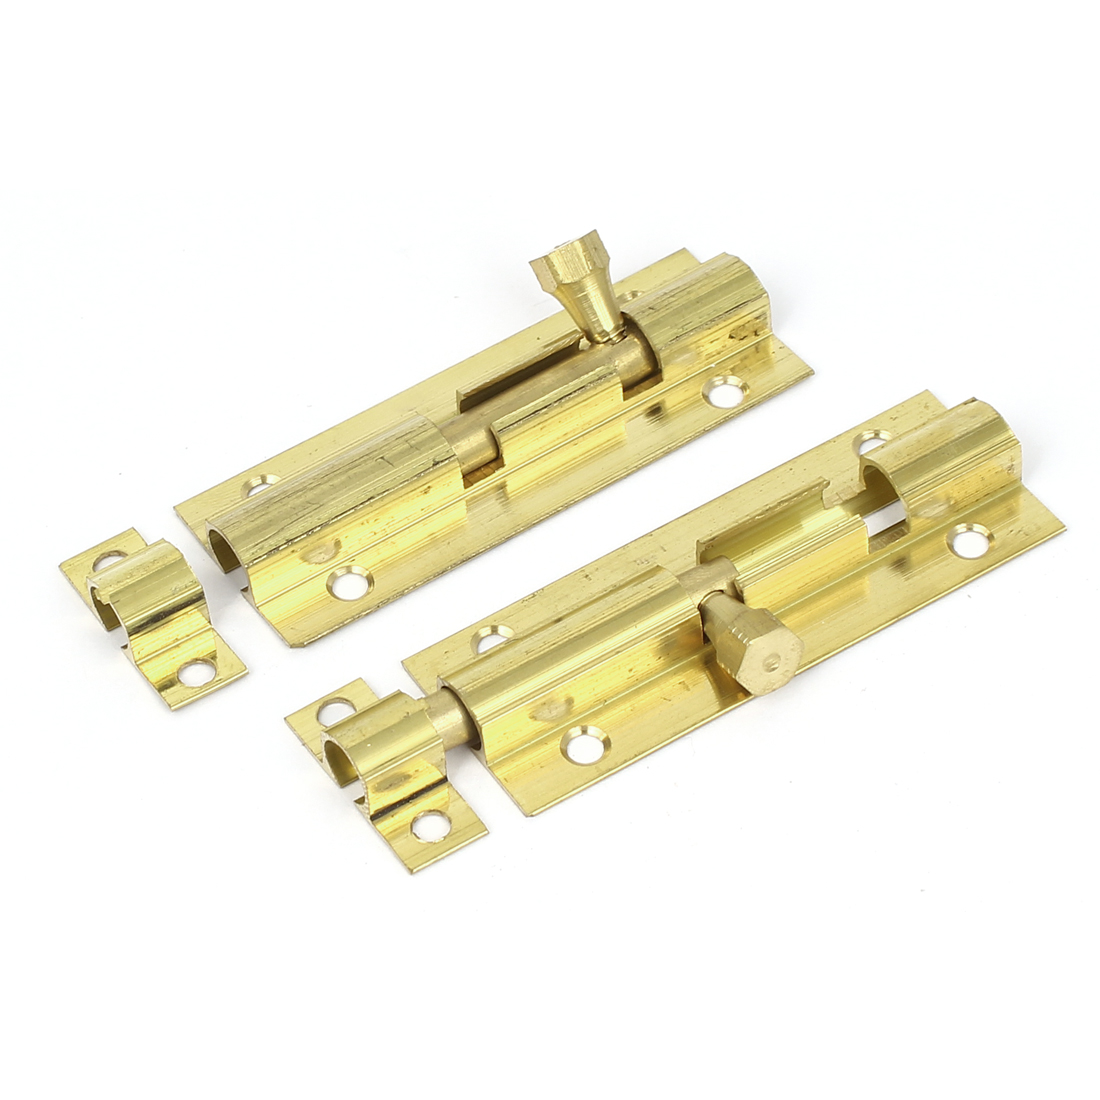 "Drawer Dresser Wooden Case 2.8"" Long Security Lock Brass Barrel Bolt Latch 2pcs."